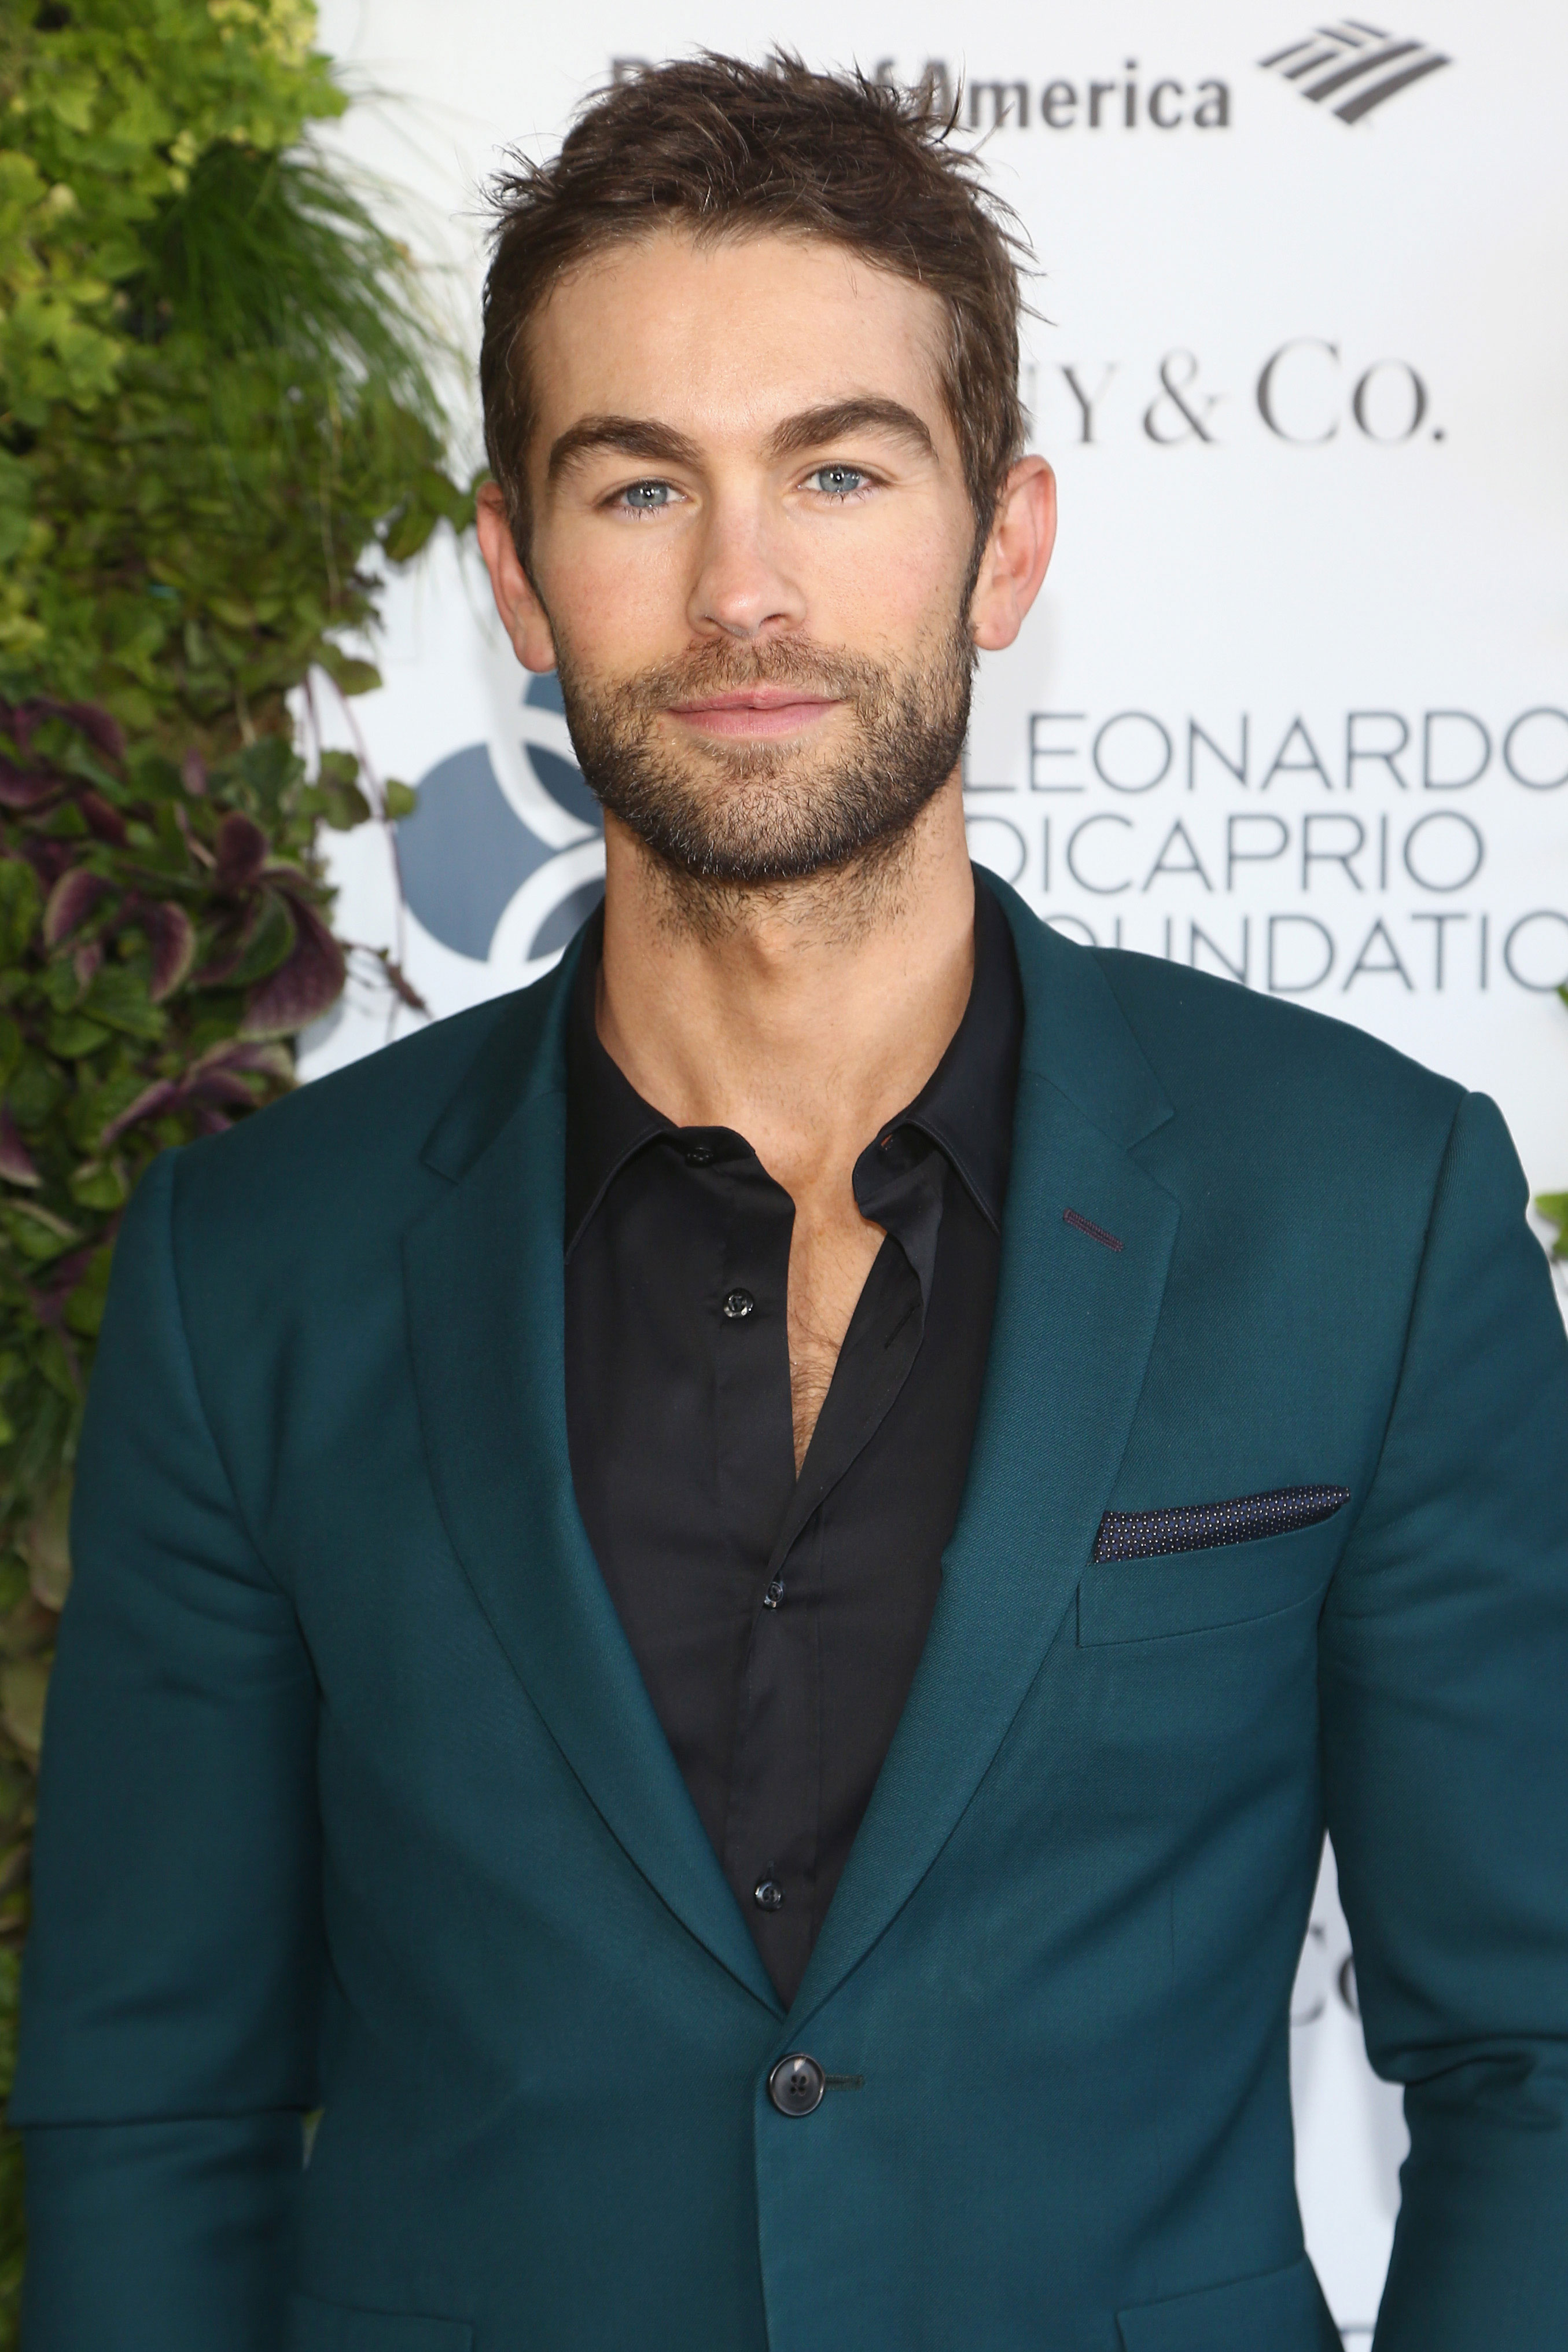 Chace Crawford Is Game for a 'Gossip Girl' Revival: 'It Was Such a Fun Part of My Life' - Chace Crawford at The Leonardo DiCaprio Foundation Gala on September 15, 2018 in Santa Rosa, California.